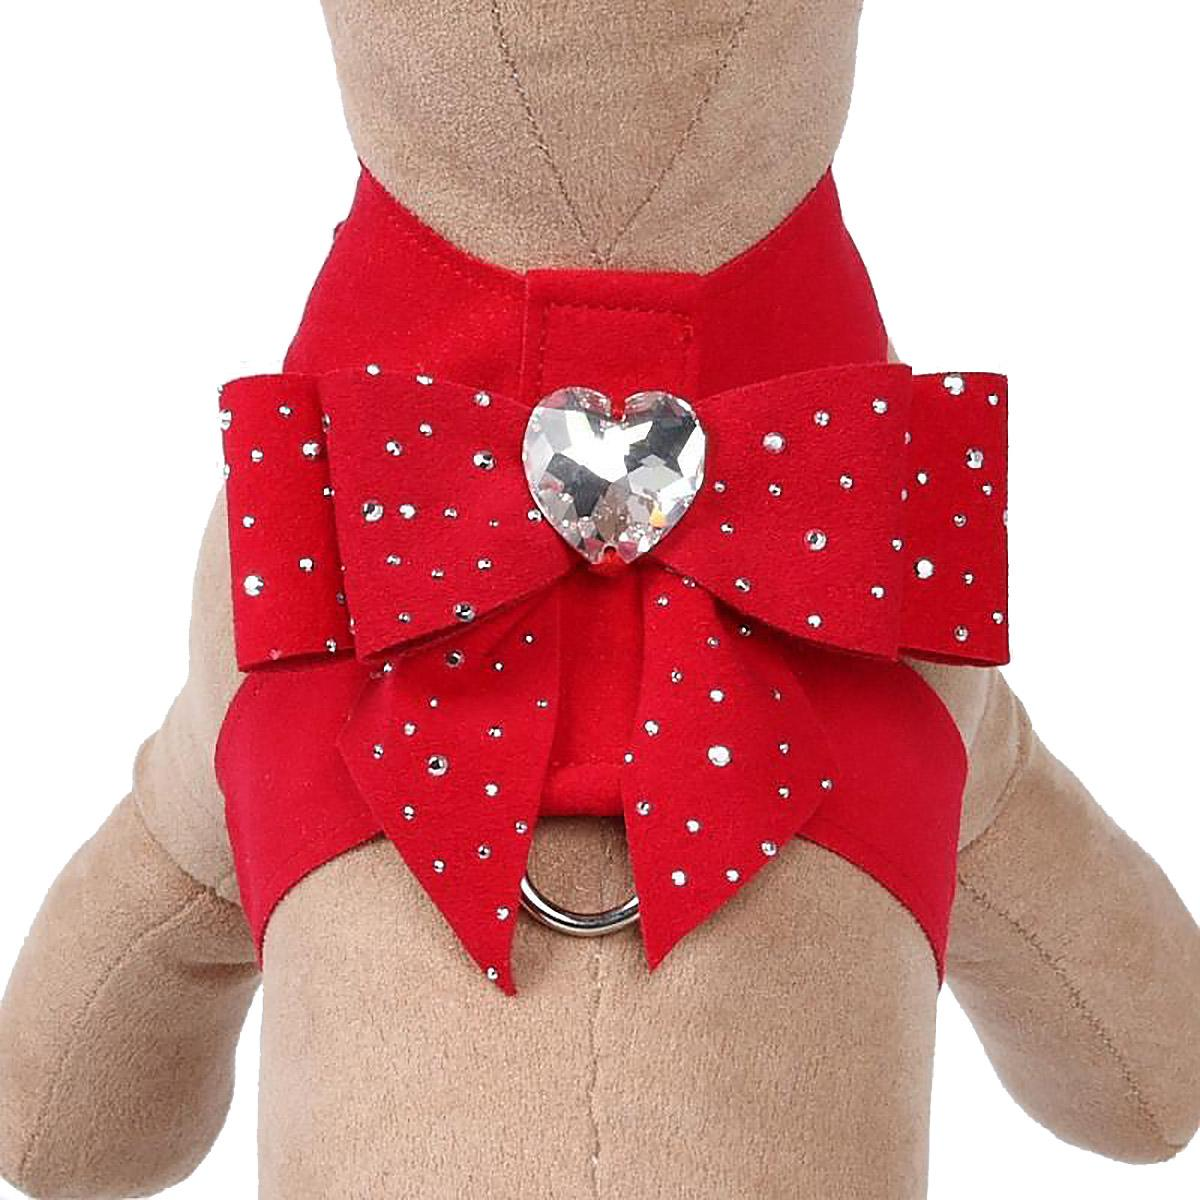 Stardust Tail Bow Heart Tinkie Dog Harness by Susan Lanci - Red